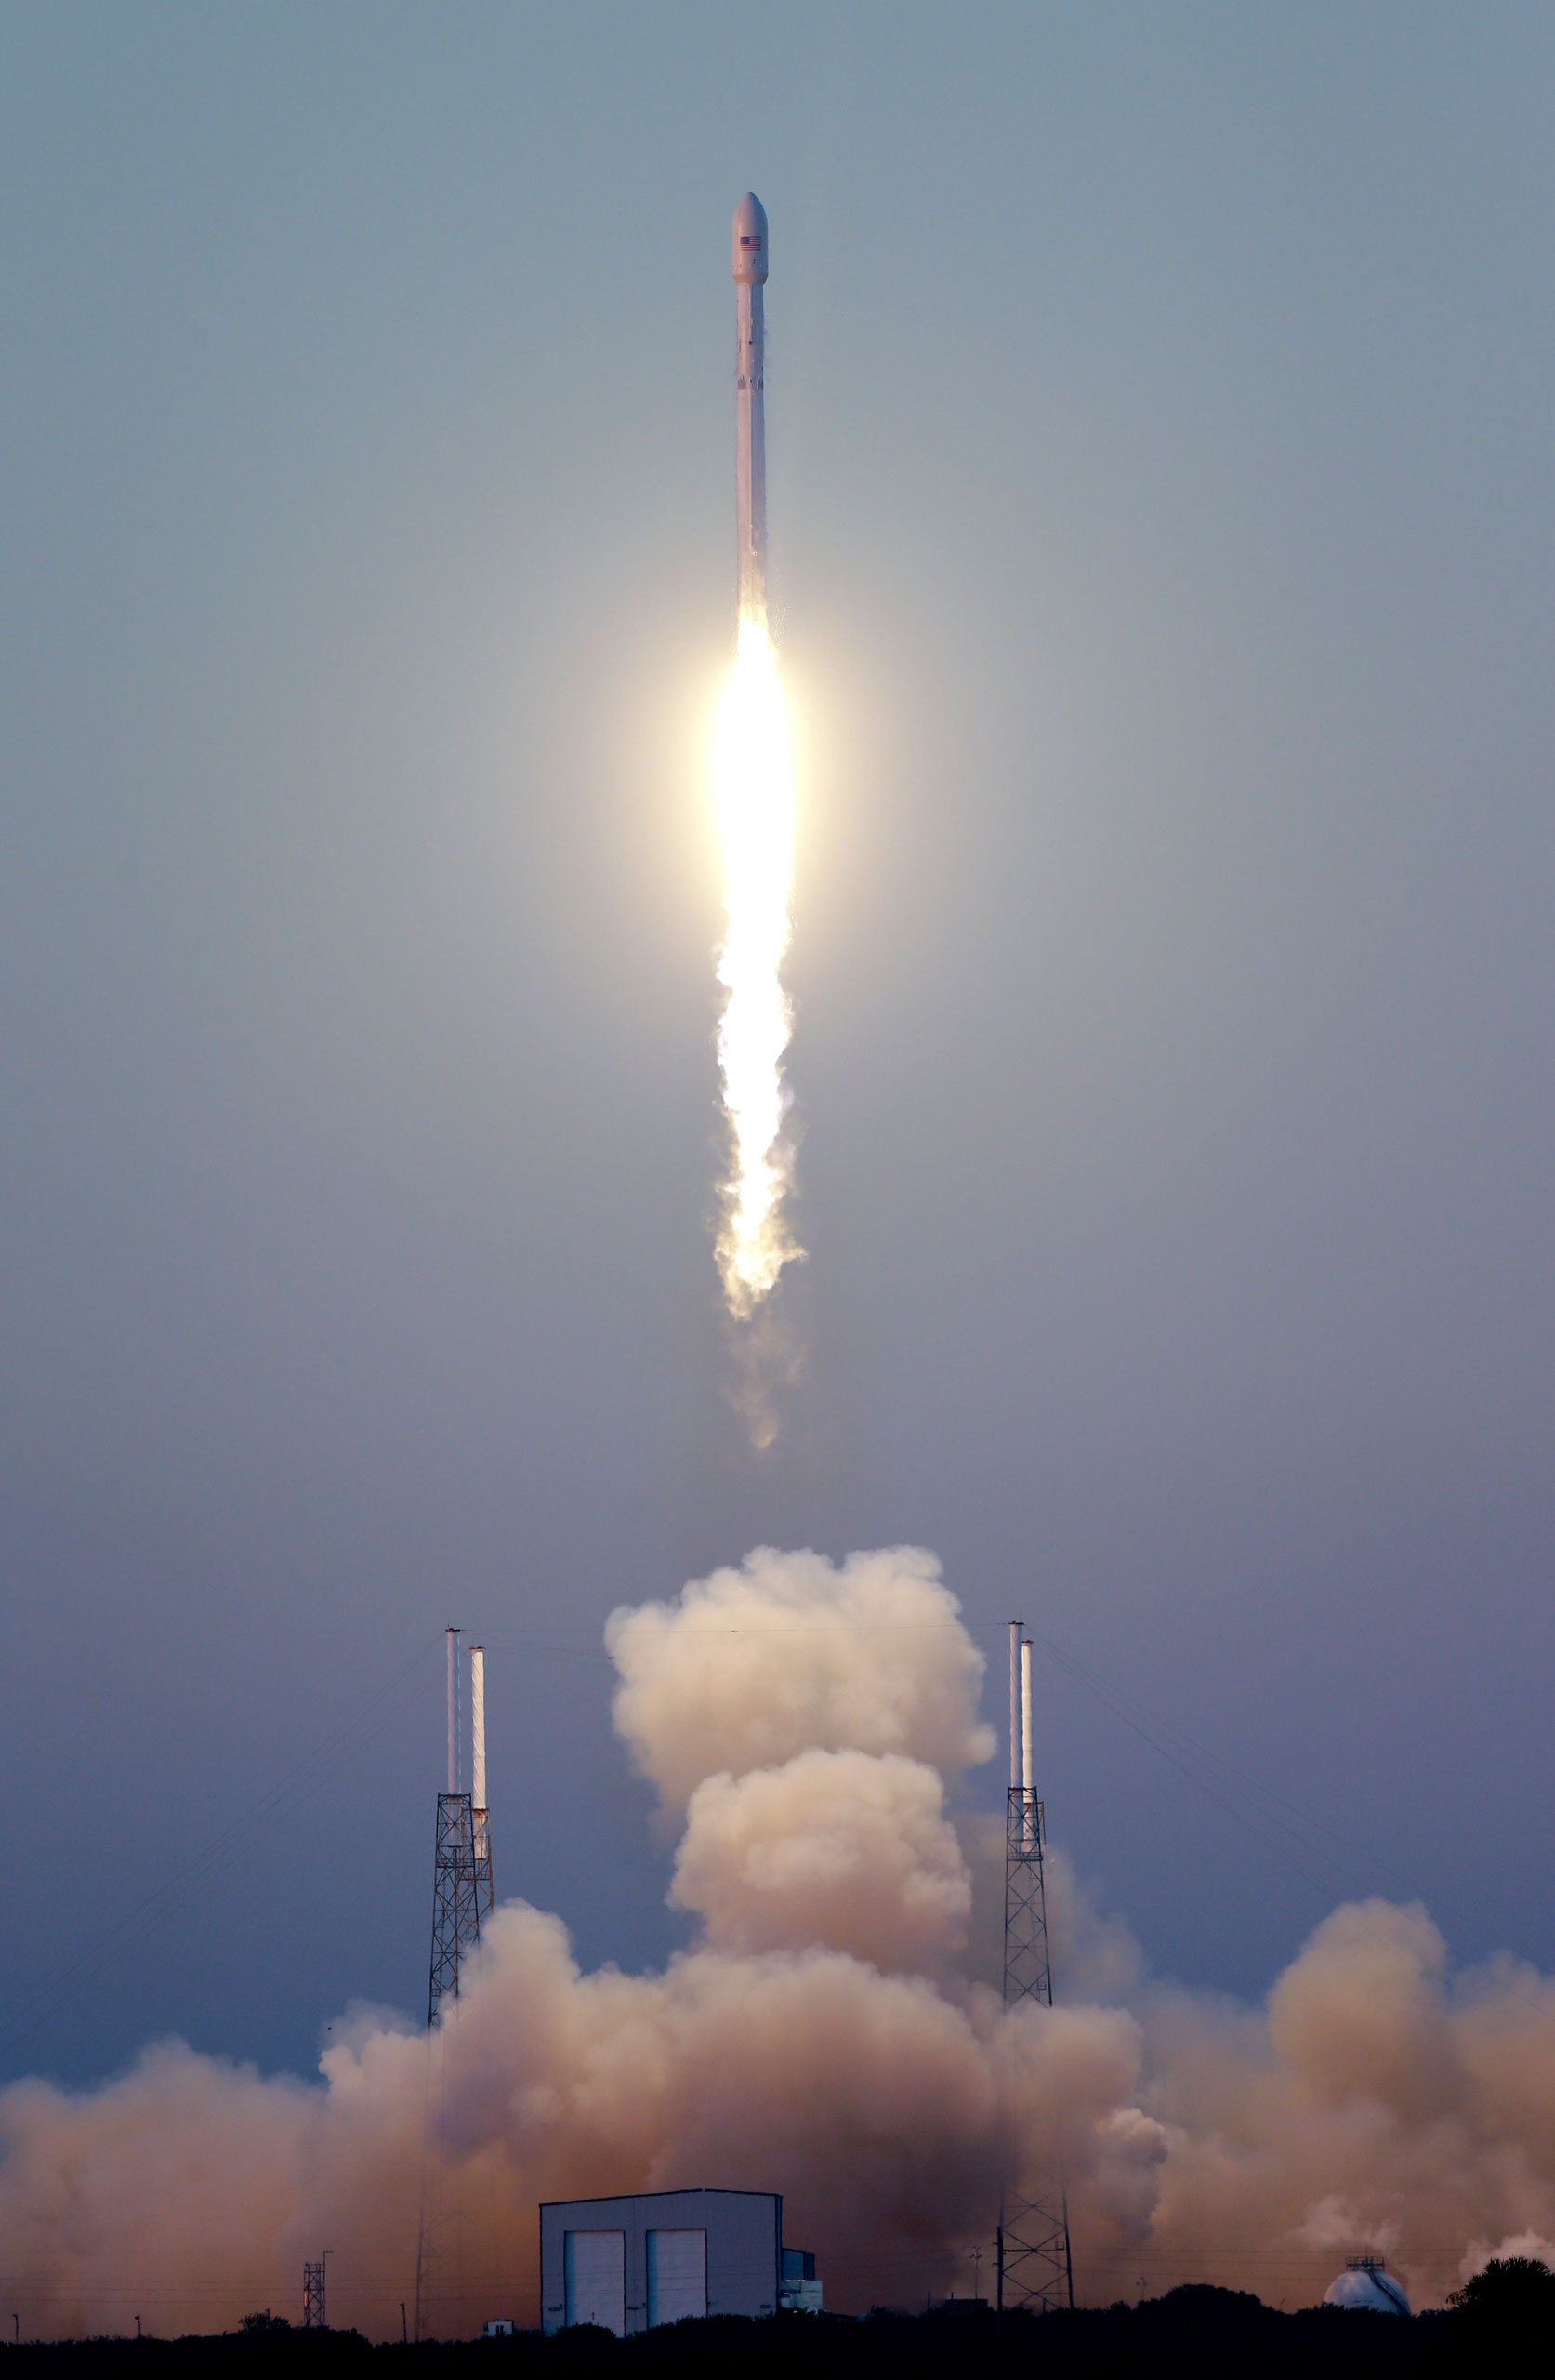 SpaceX embarked on its first deep space mission with the launch of this Falcon 9 rocket on Feb. 11, 2015 at Cape Canaveral, Fla., after two previous failed attempts. Onboard is the Deep Space Climate Observatory, which will head 1 million miles from Earth to watch for incoming geomagnetic storms that could trigger power outages on our planet.